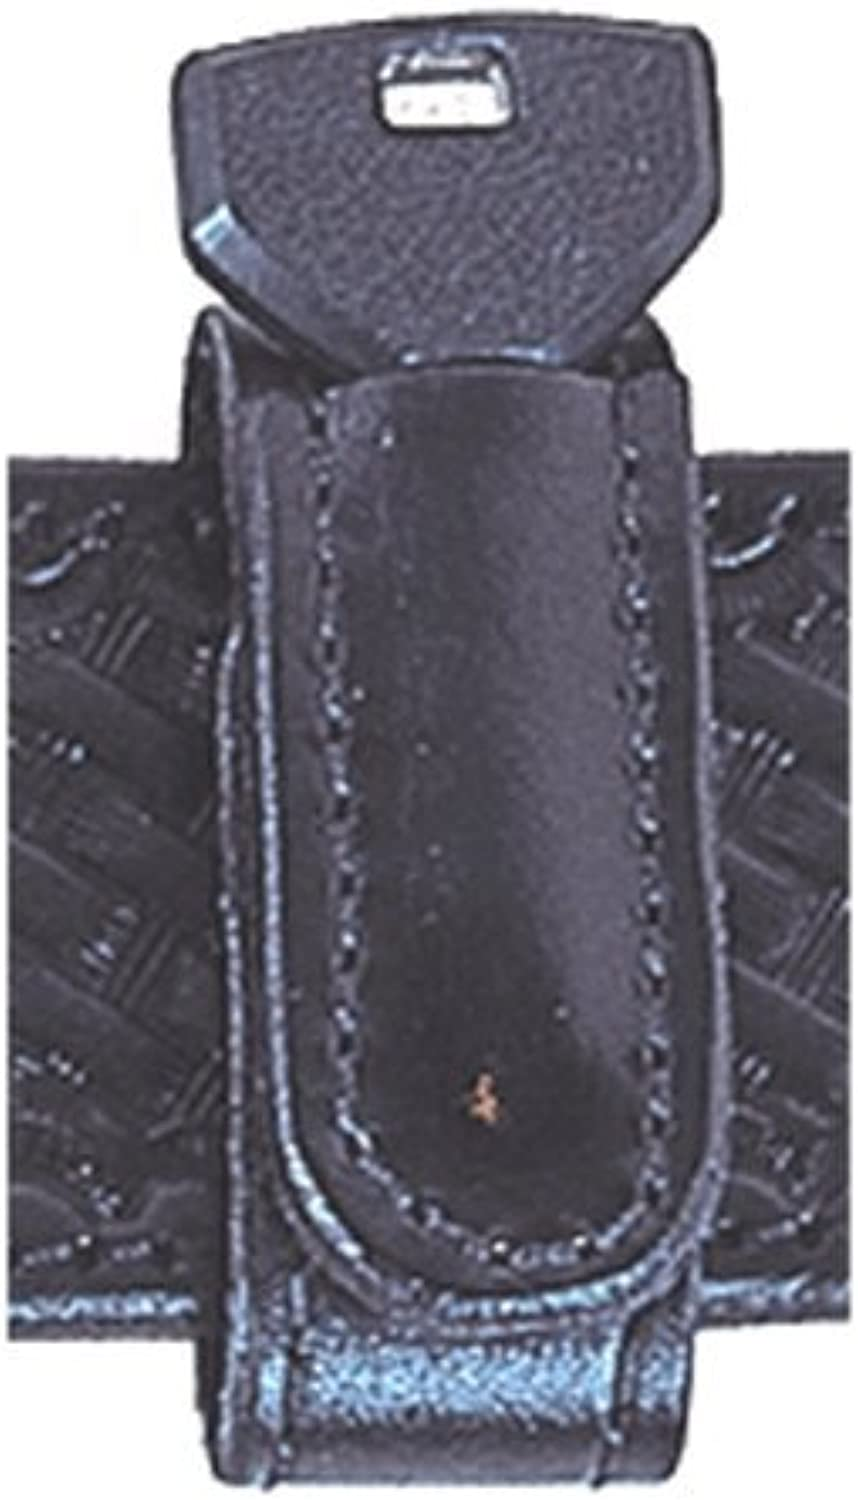 Stallion Leather Wide Belt Keeper with Spare Key Slot, 1 by Stallion Leather